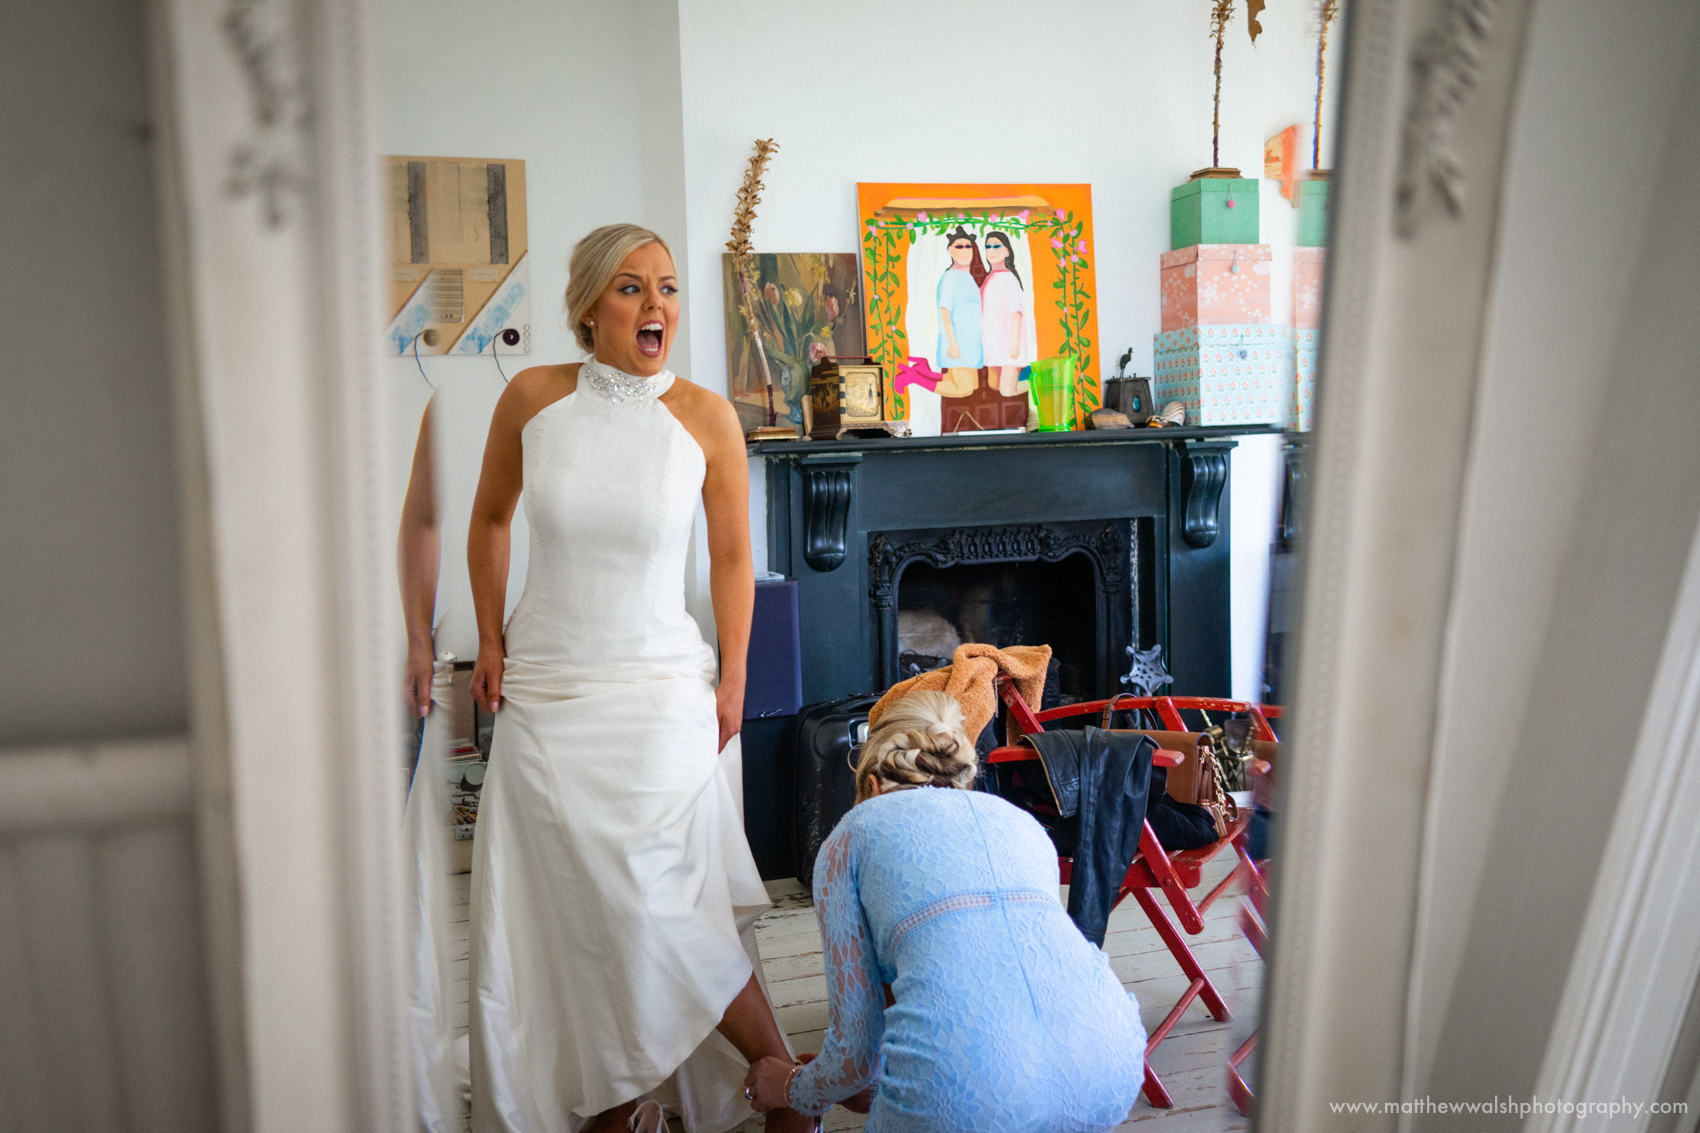 A real documentary style moment as the bride shoes are tightened too tight